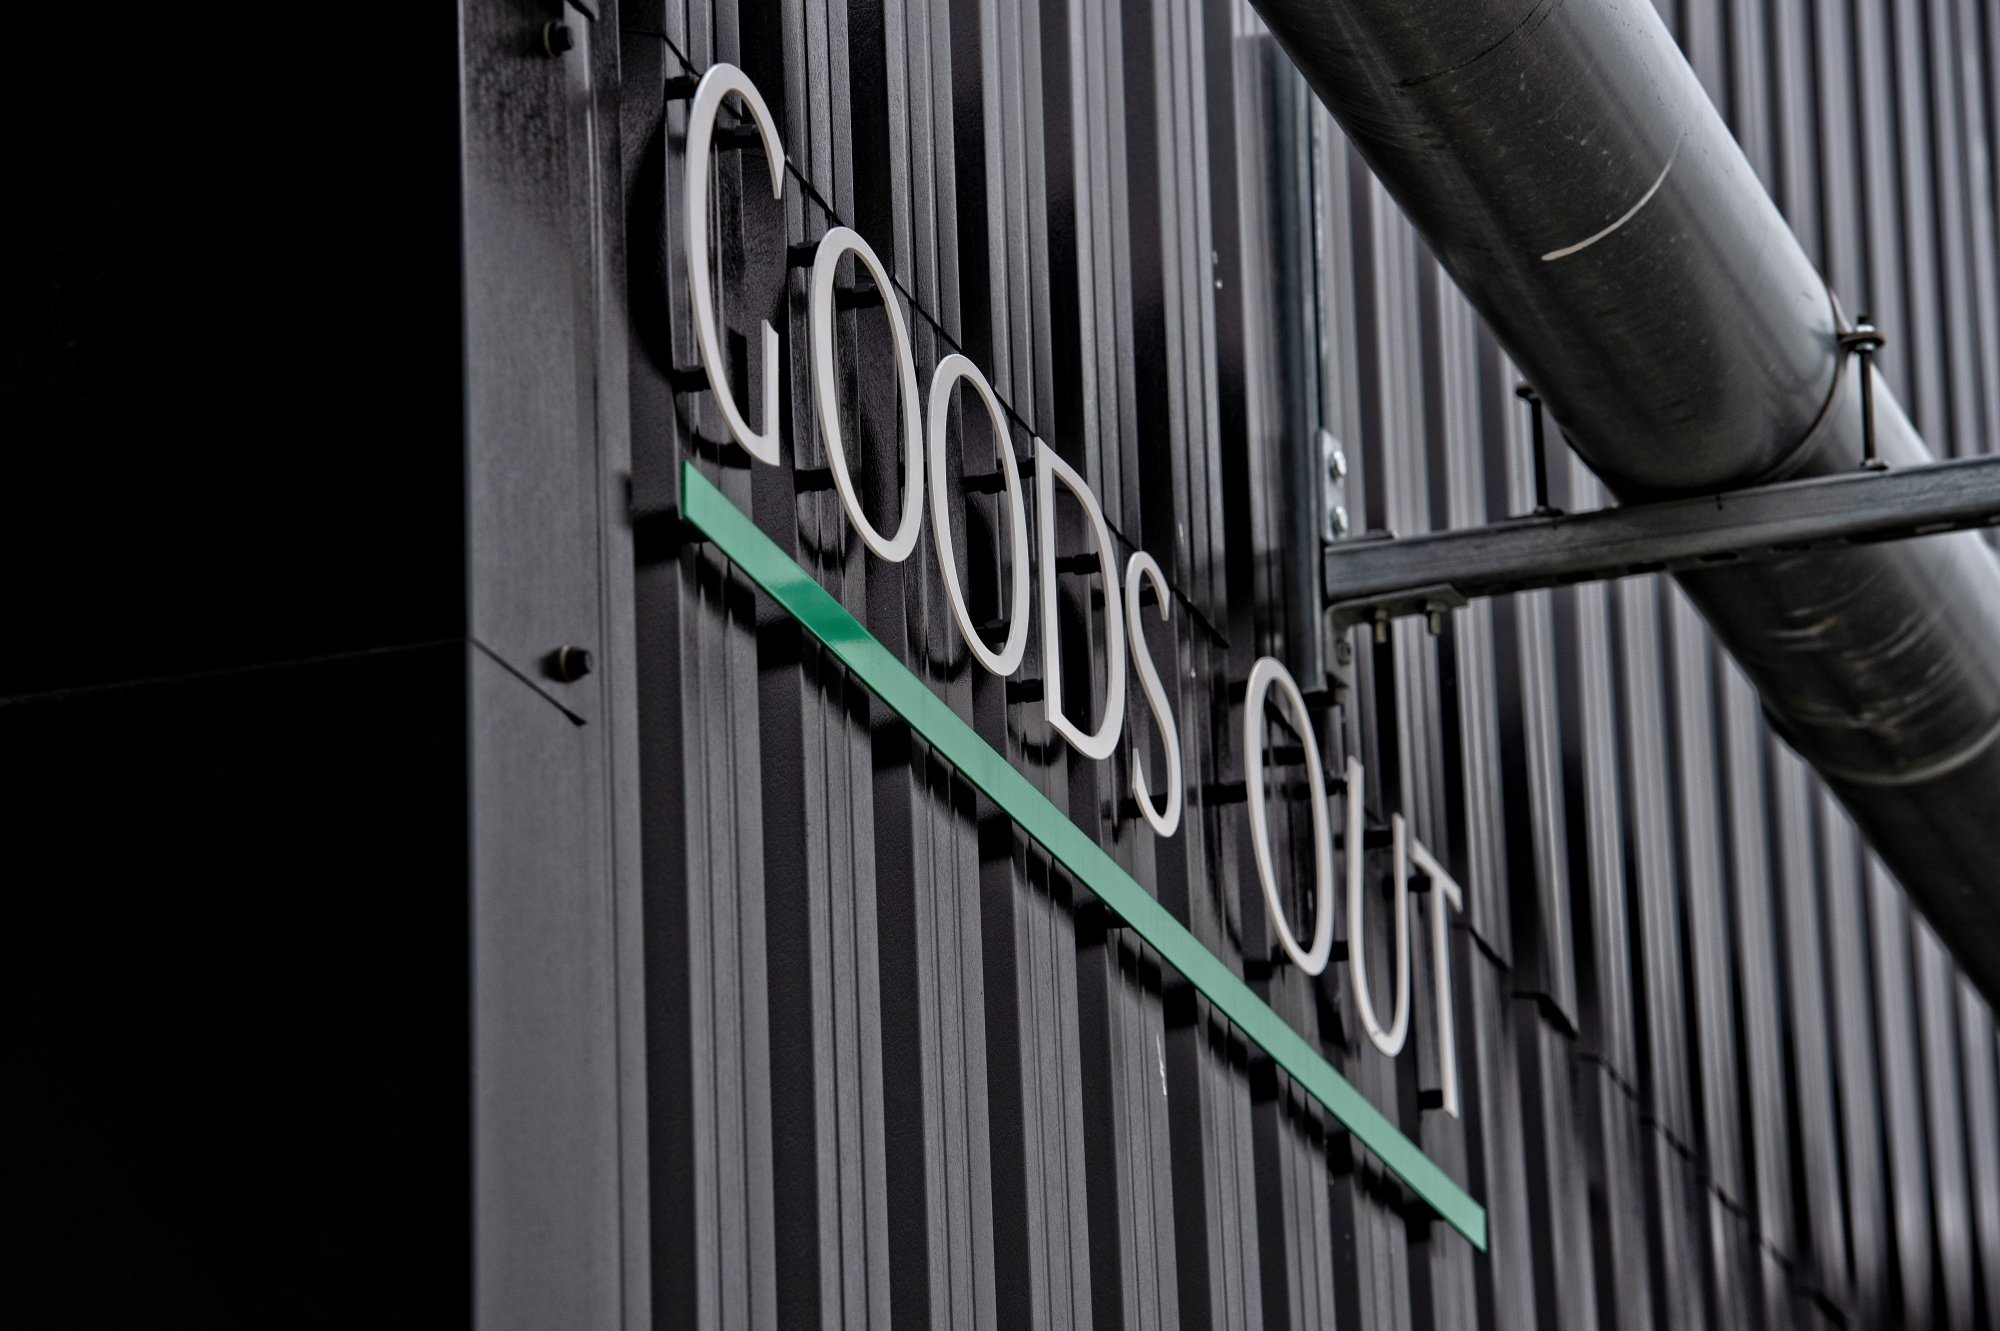 Goods Out Sign.JPG